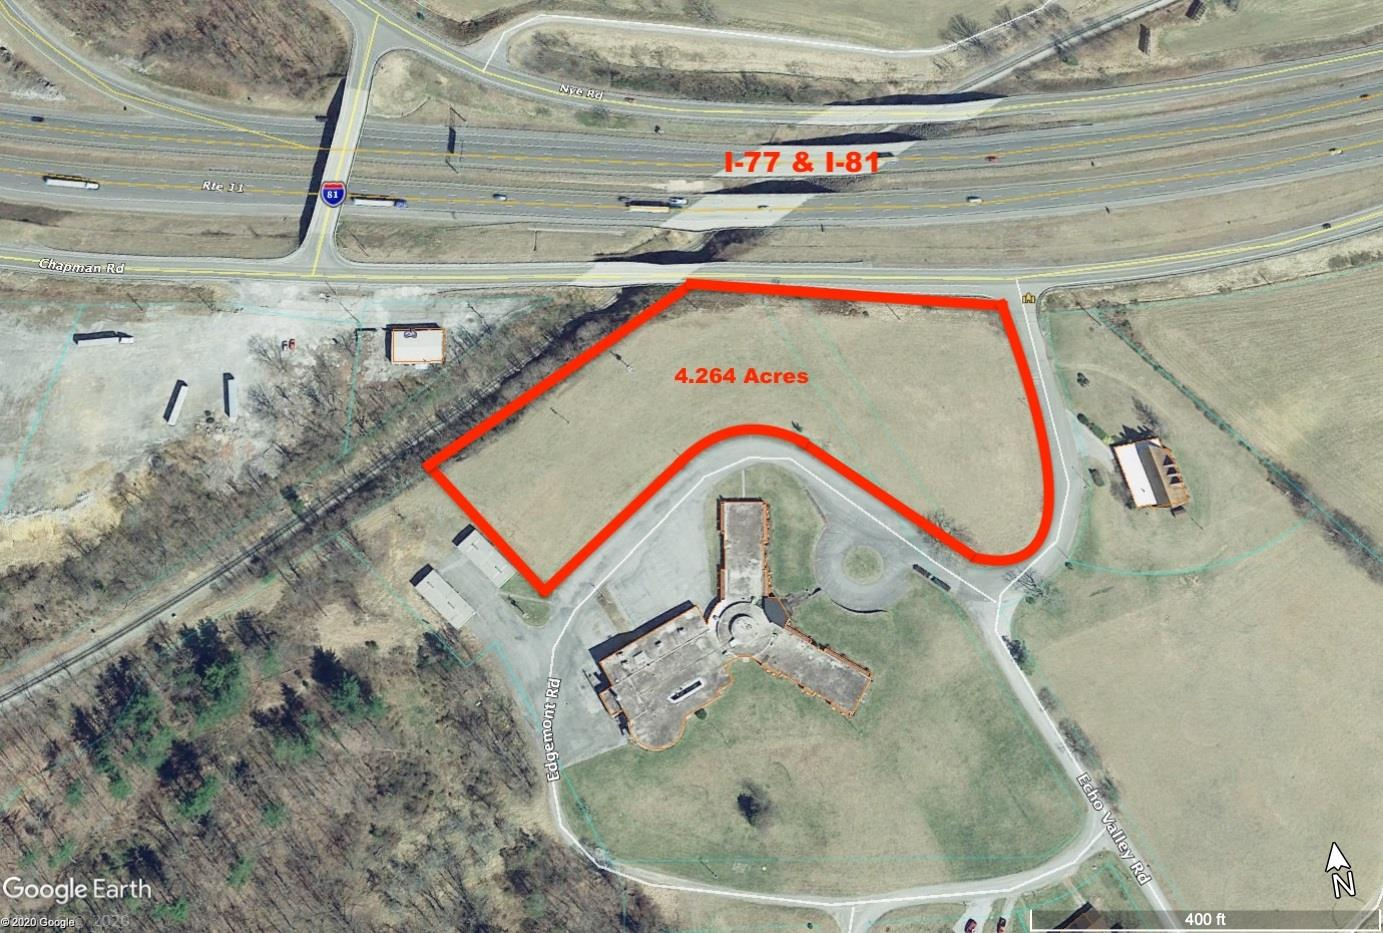 These 4 acres are prime commercial real estate for this part of the county. Sitting directly off of exit 73 off of I-81/77, there are thousands of cars that pass this spot every single day. Easy access means it is perfect for retail, restaurant, hotel and other business endeavors. An opportunity like this doesn't come along often, and is a great place to showcase your business like never before. Schedule a showing today!